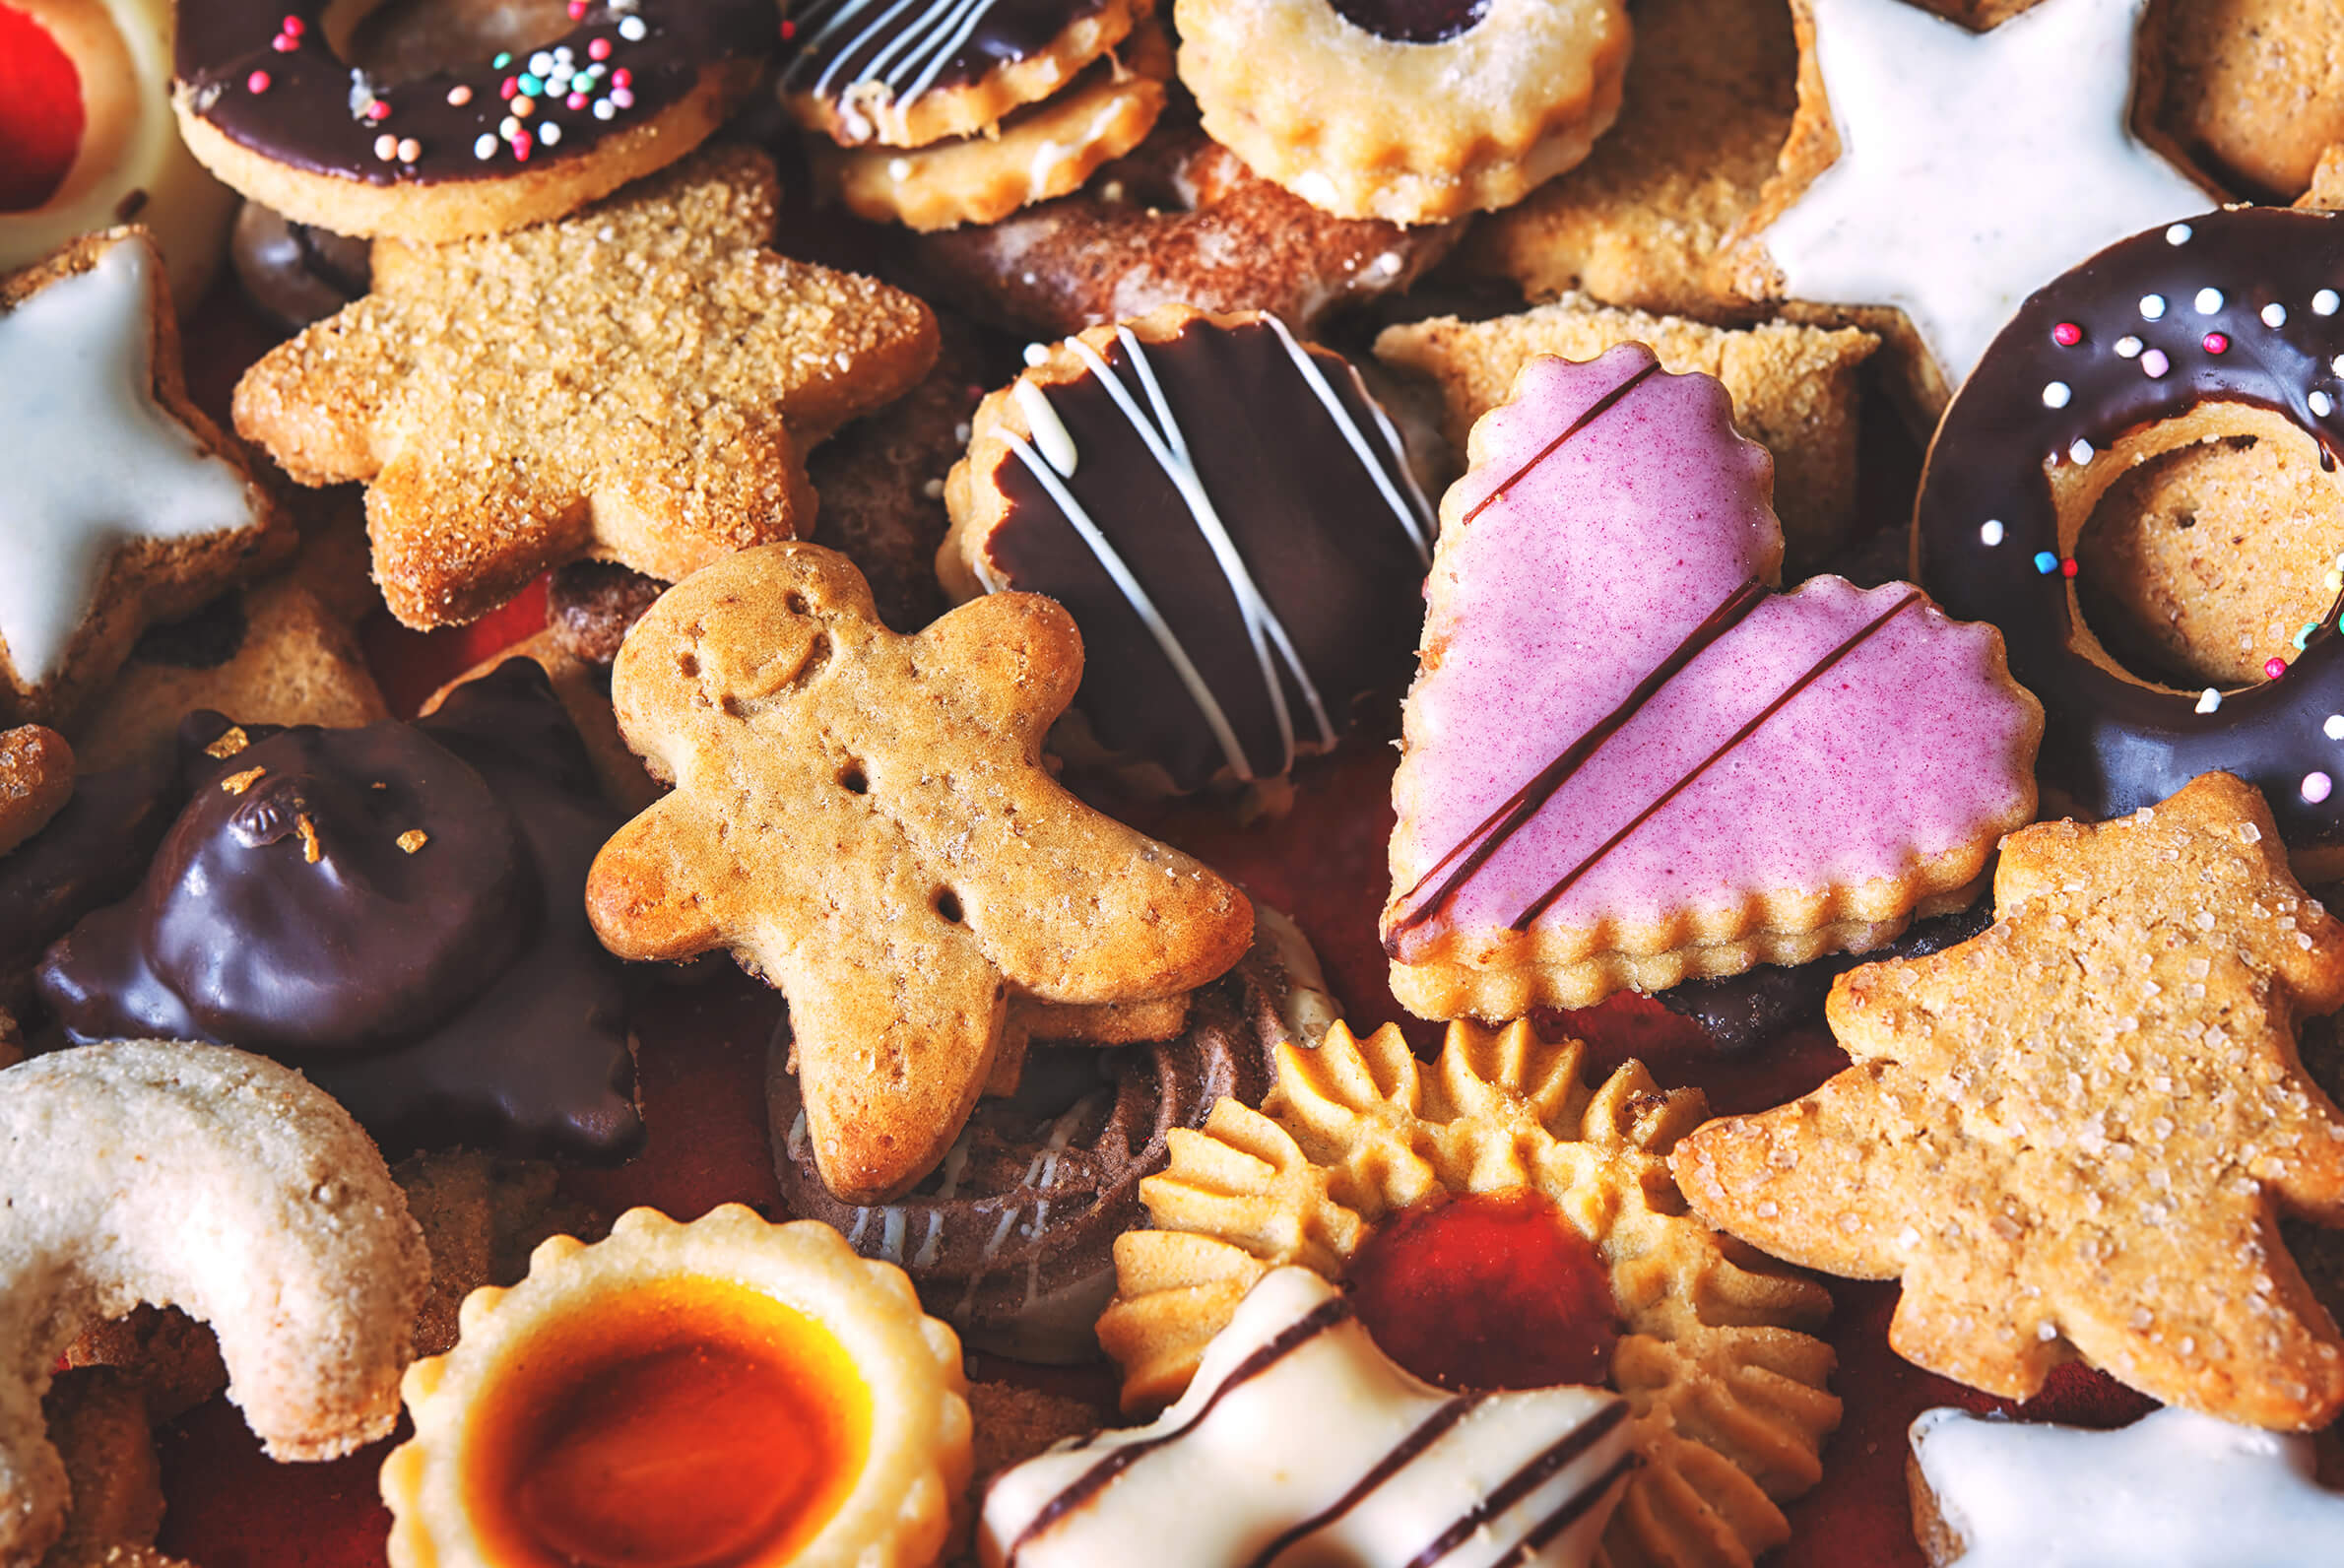 Here are just a few holiday cookie recipes that will make an impression.